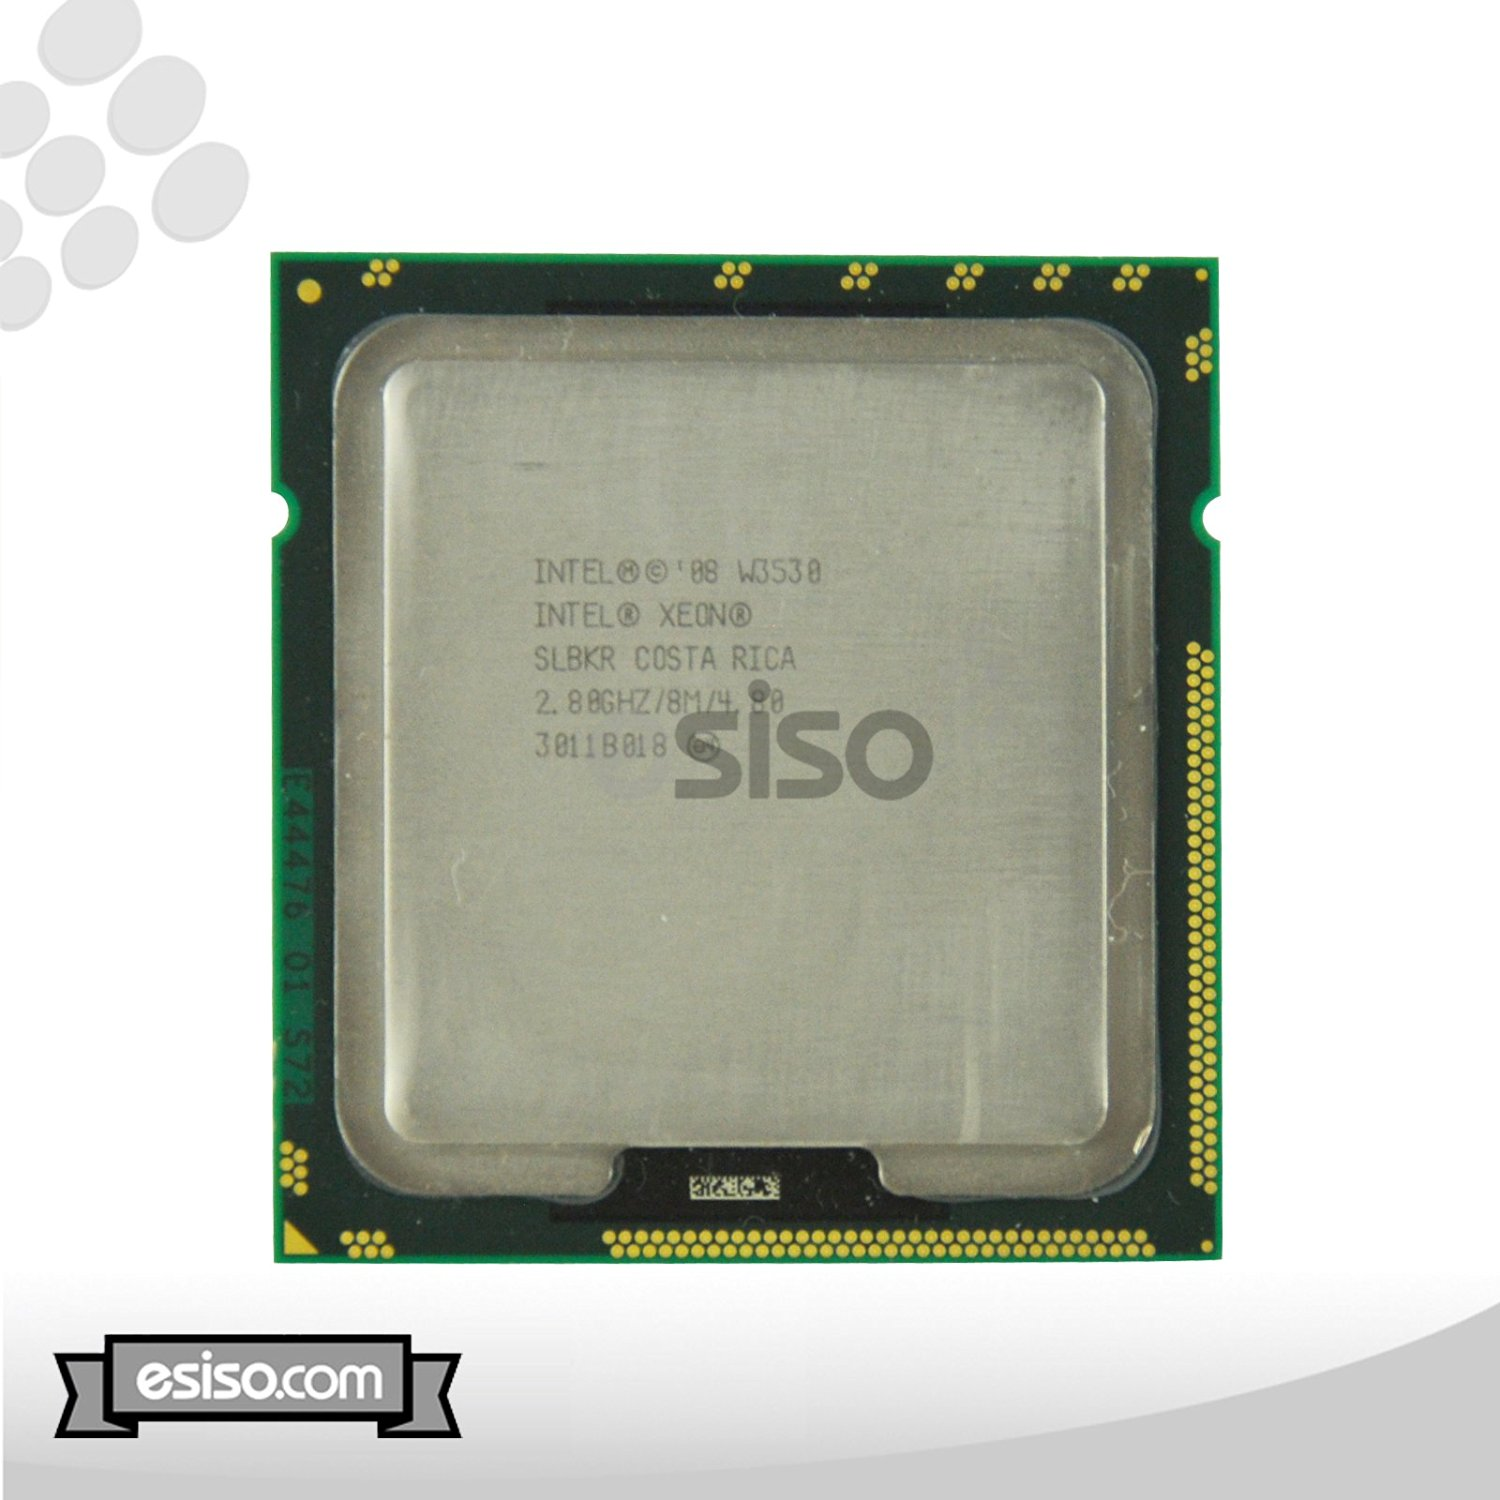 Cheap Xeon Gt, find Xeon Gt deals on line at Alibaba com